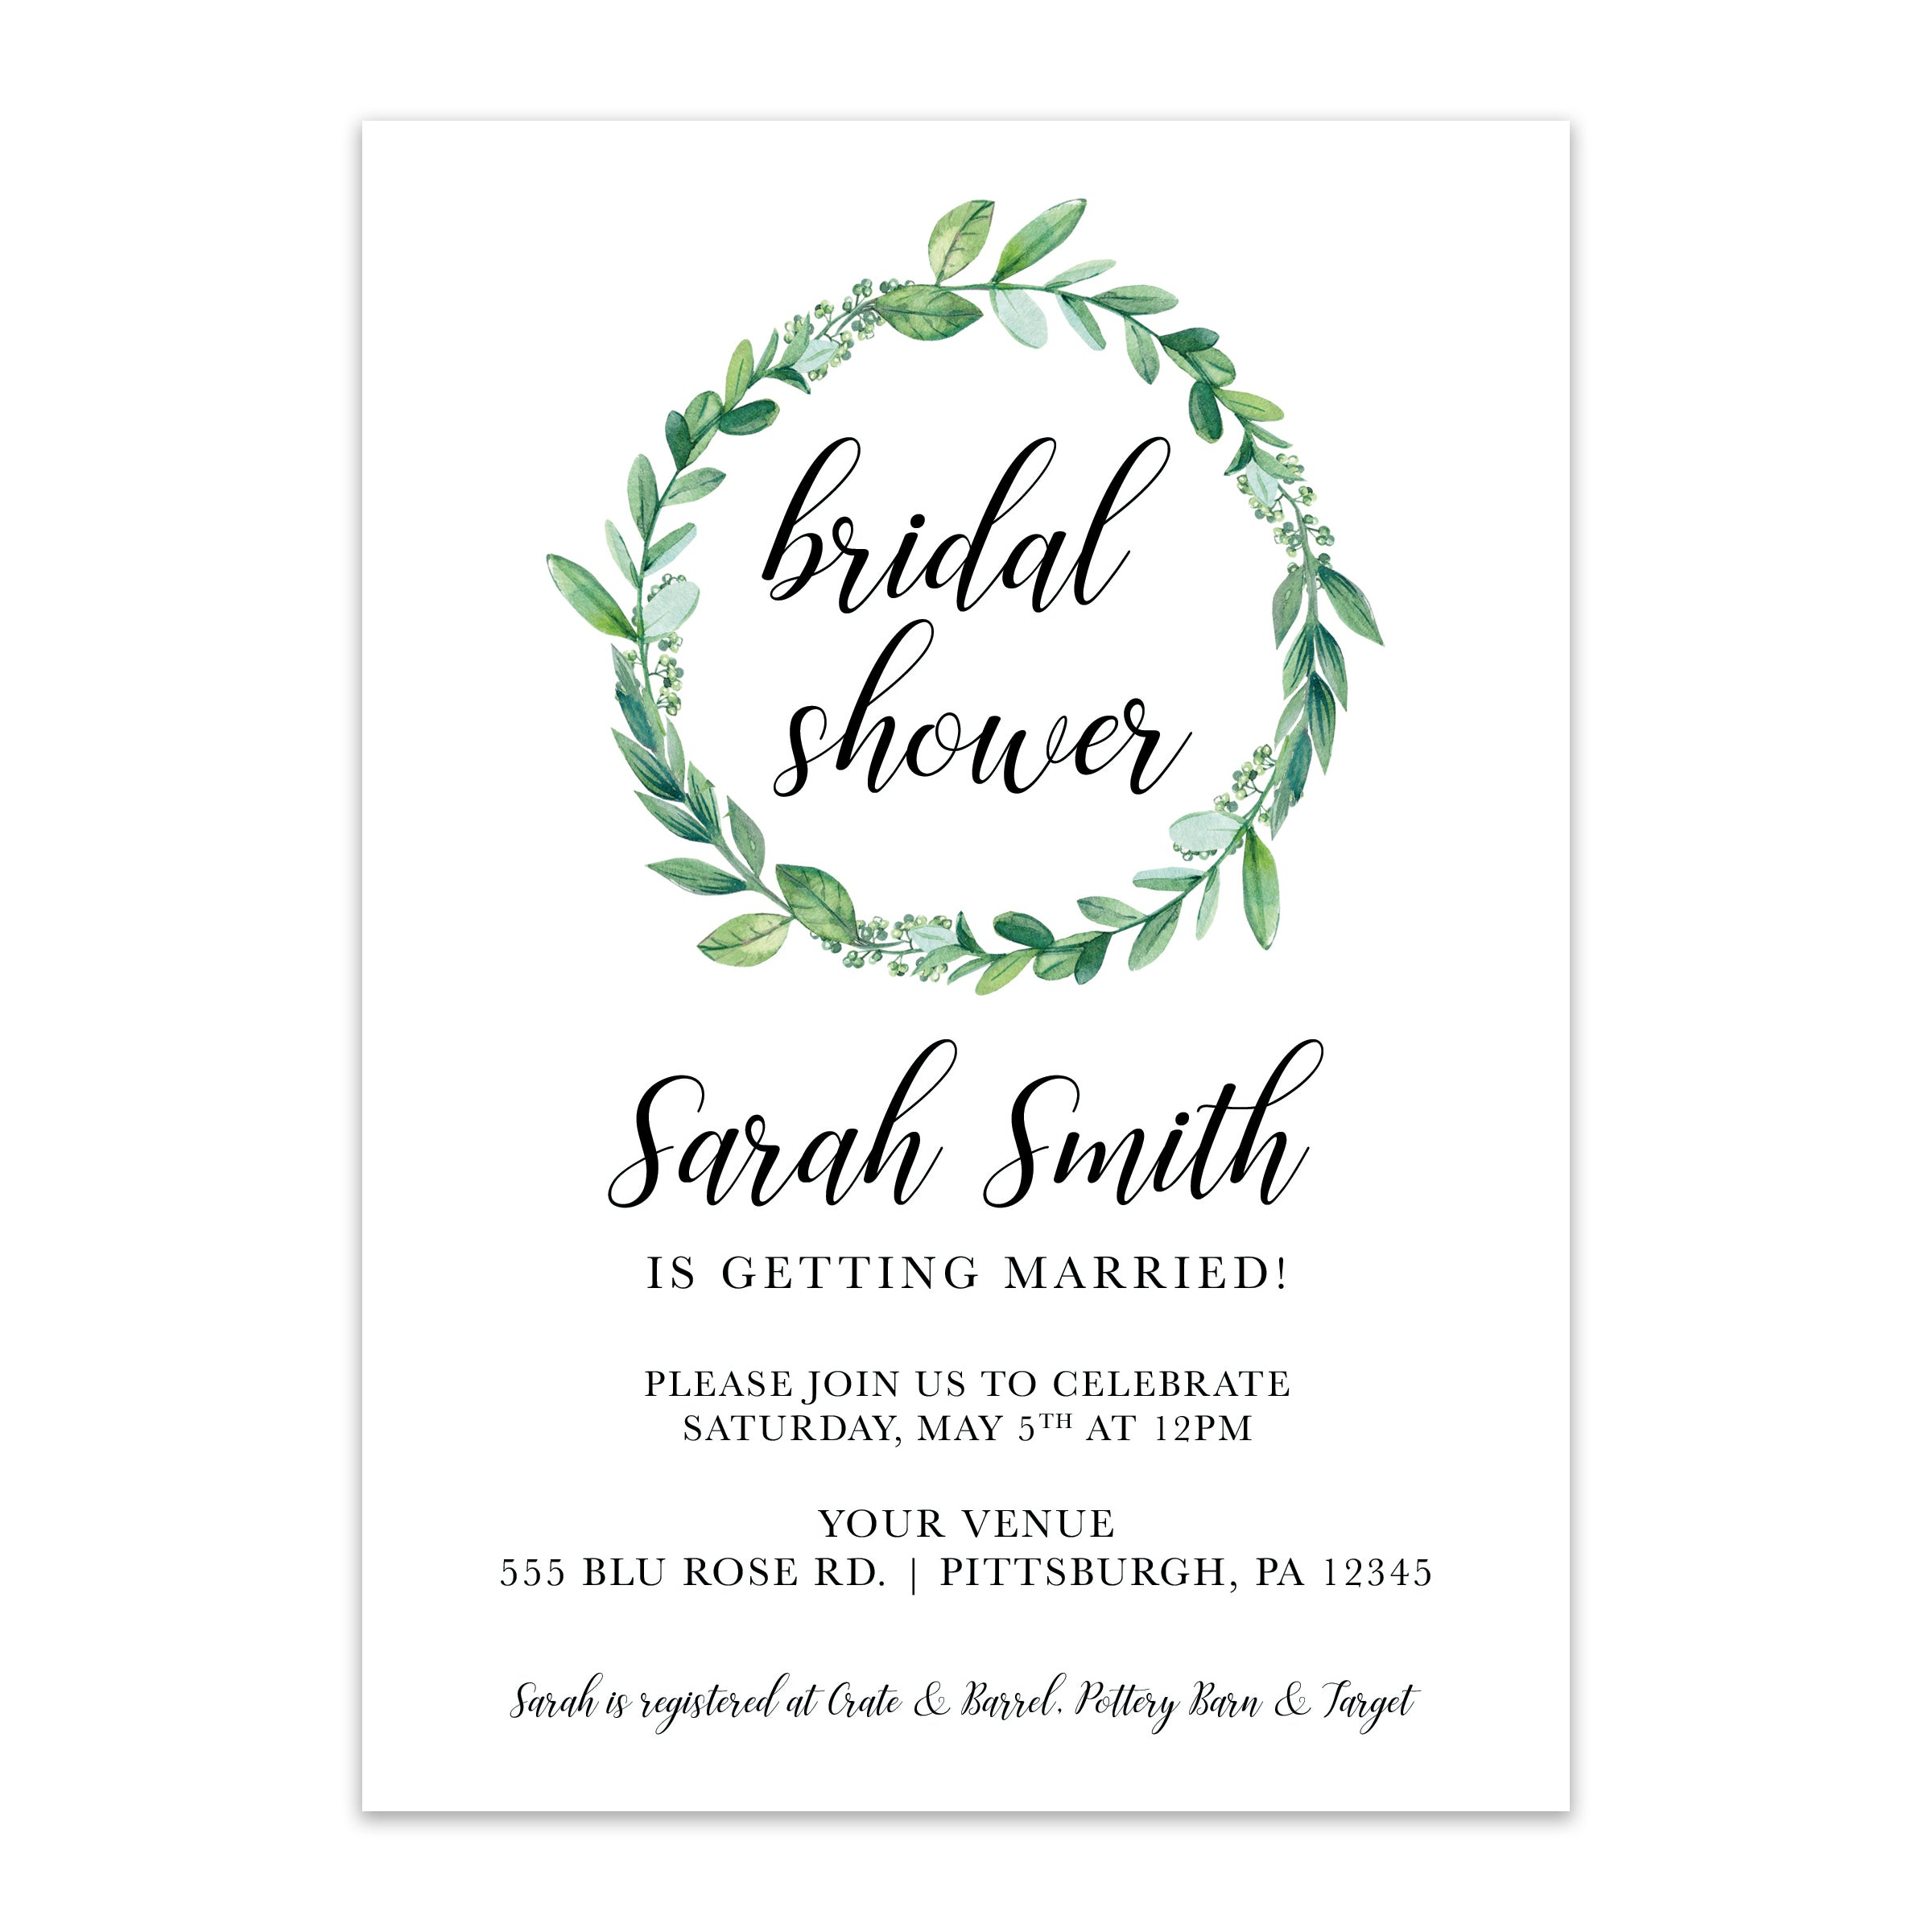 Green Wreath Bridal Shower Invitation - Blú Rose Designs